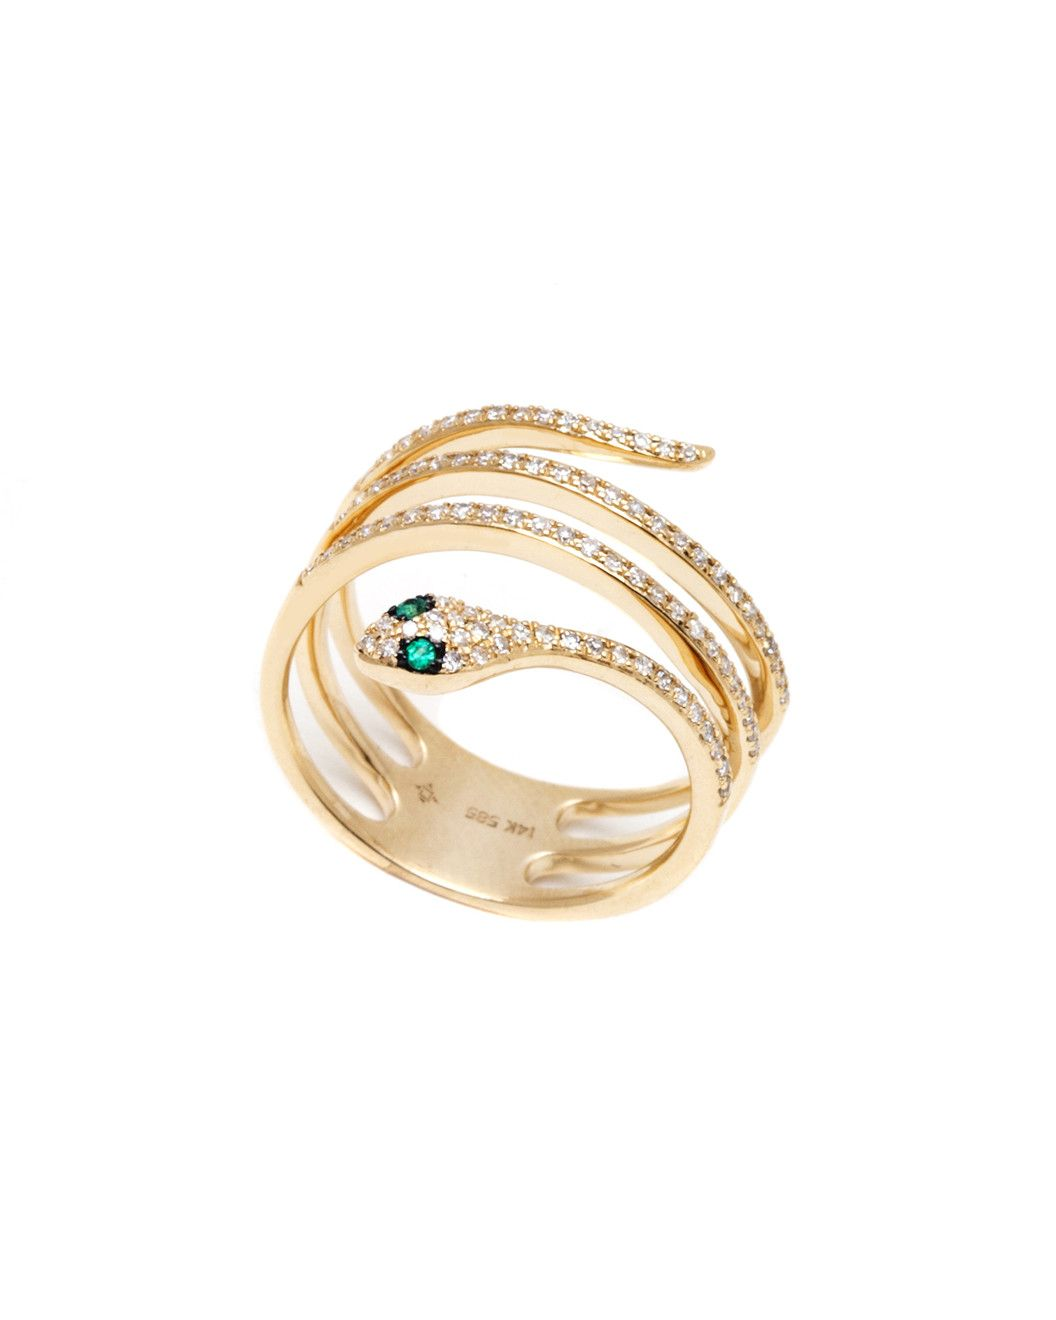 Spotted this Jewels by Lori Kassin 14K 0.24 ct. tw. Diamond & Emerald Snake Ring on Rue La La. Shop (quickly!).